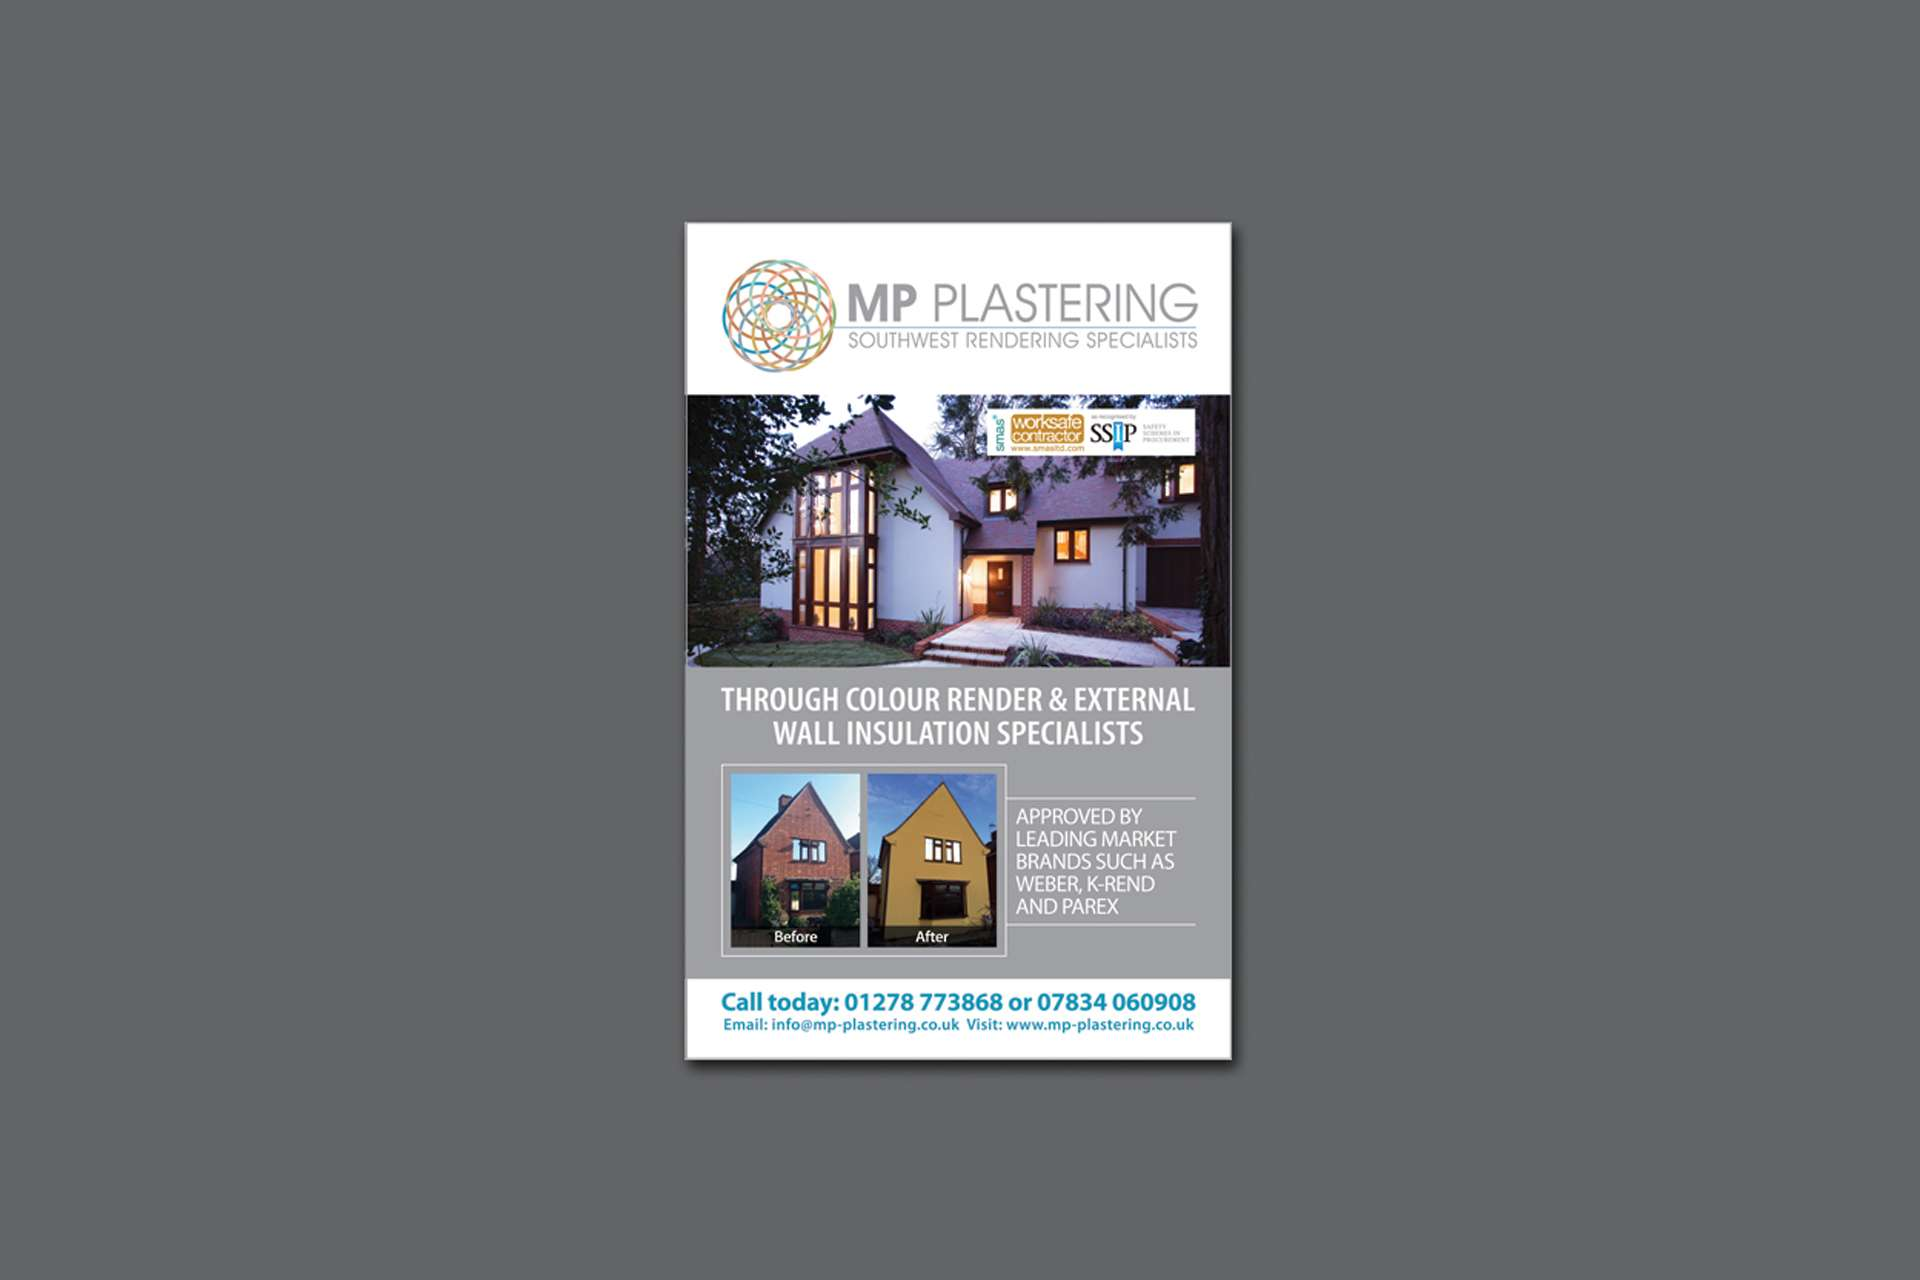 Advert design for MP Plastering in Highbridge, Somerset